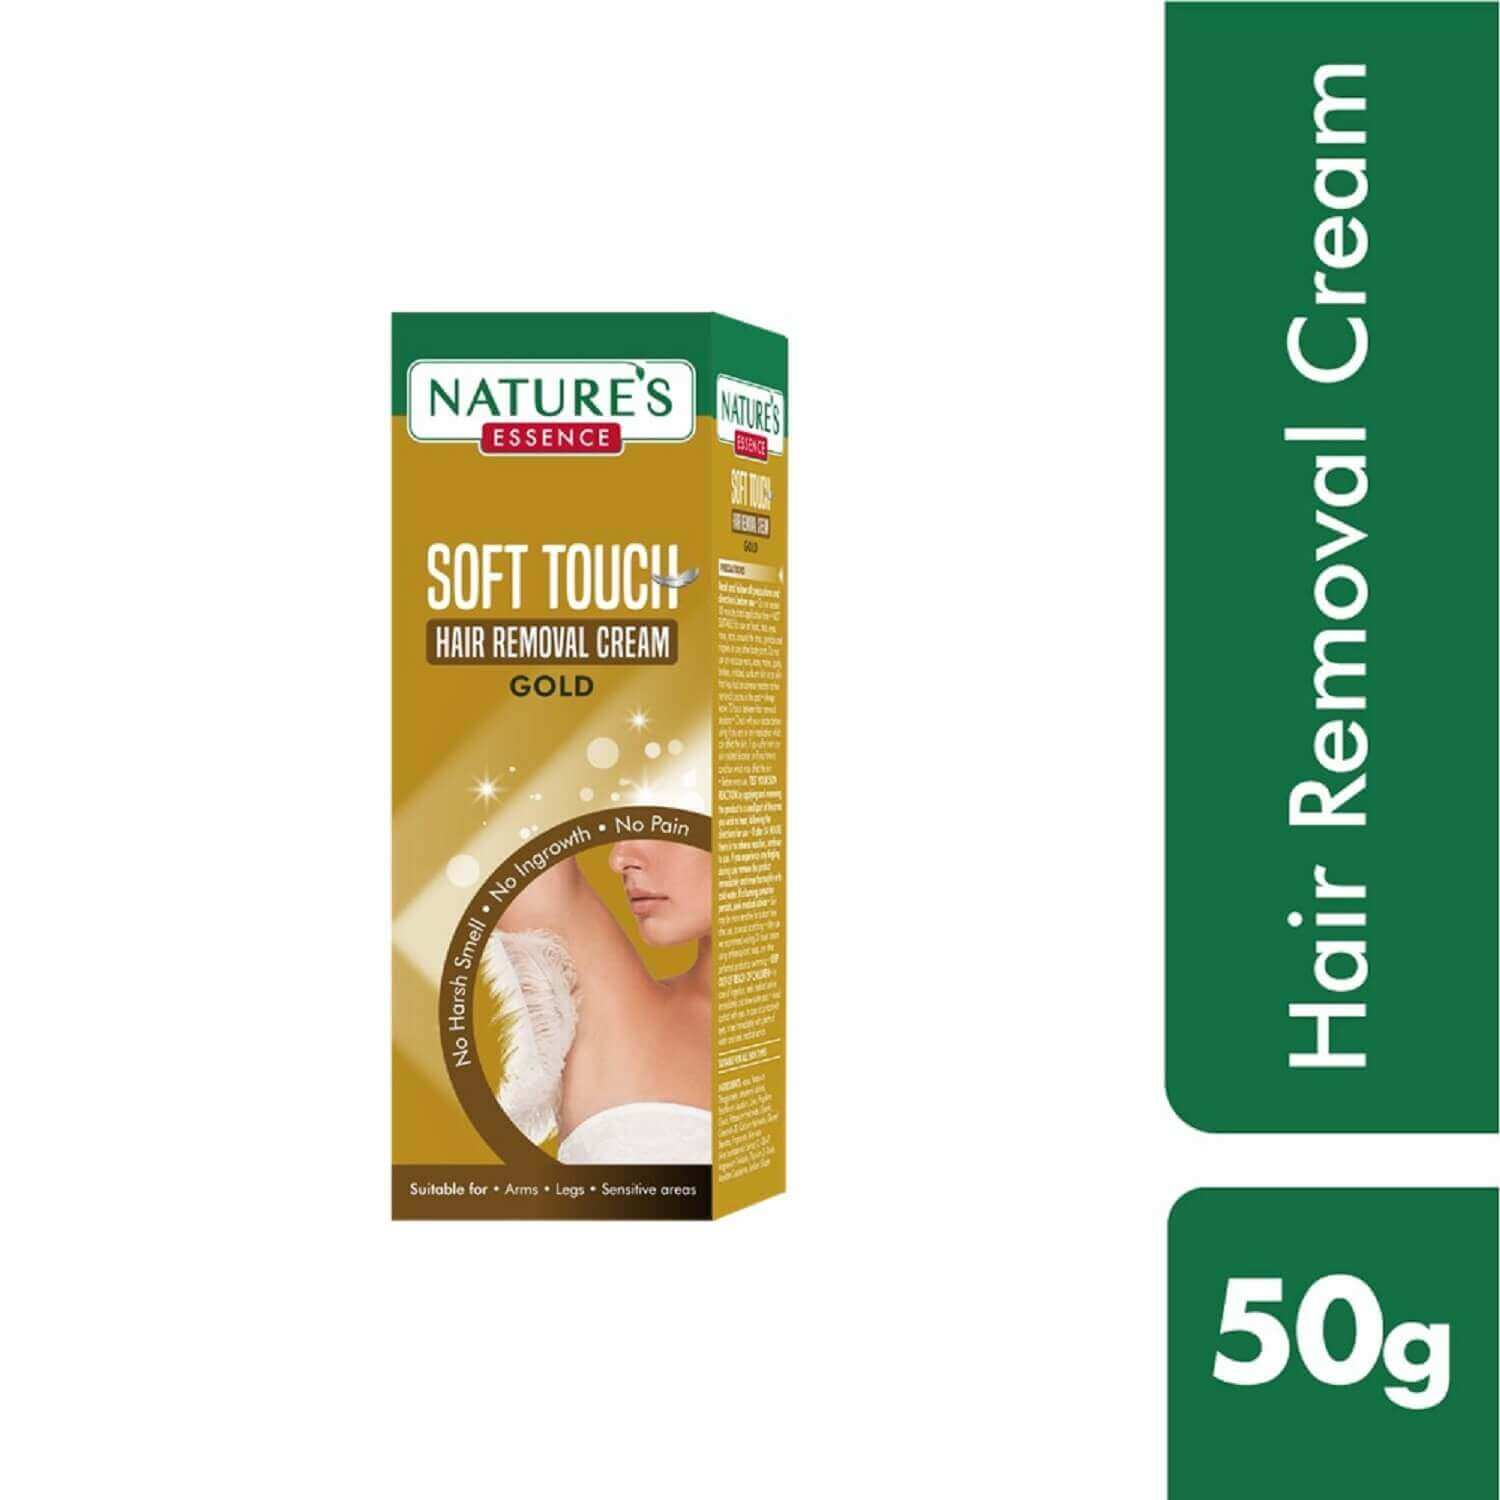 Soft Touch Hair Removal Cream  Gold, 50 gms